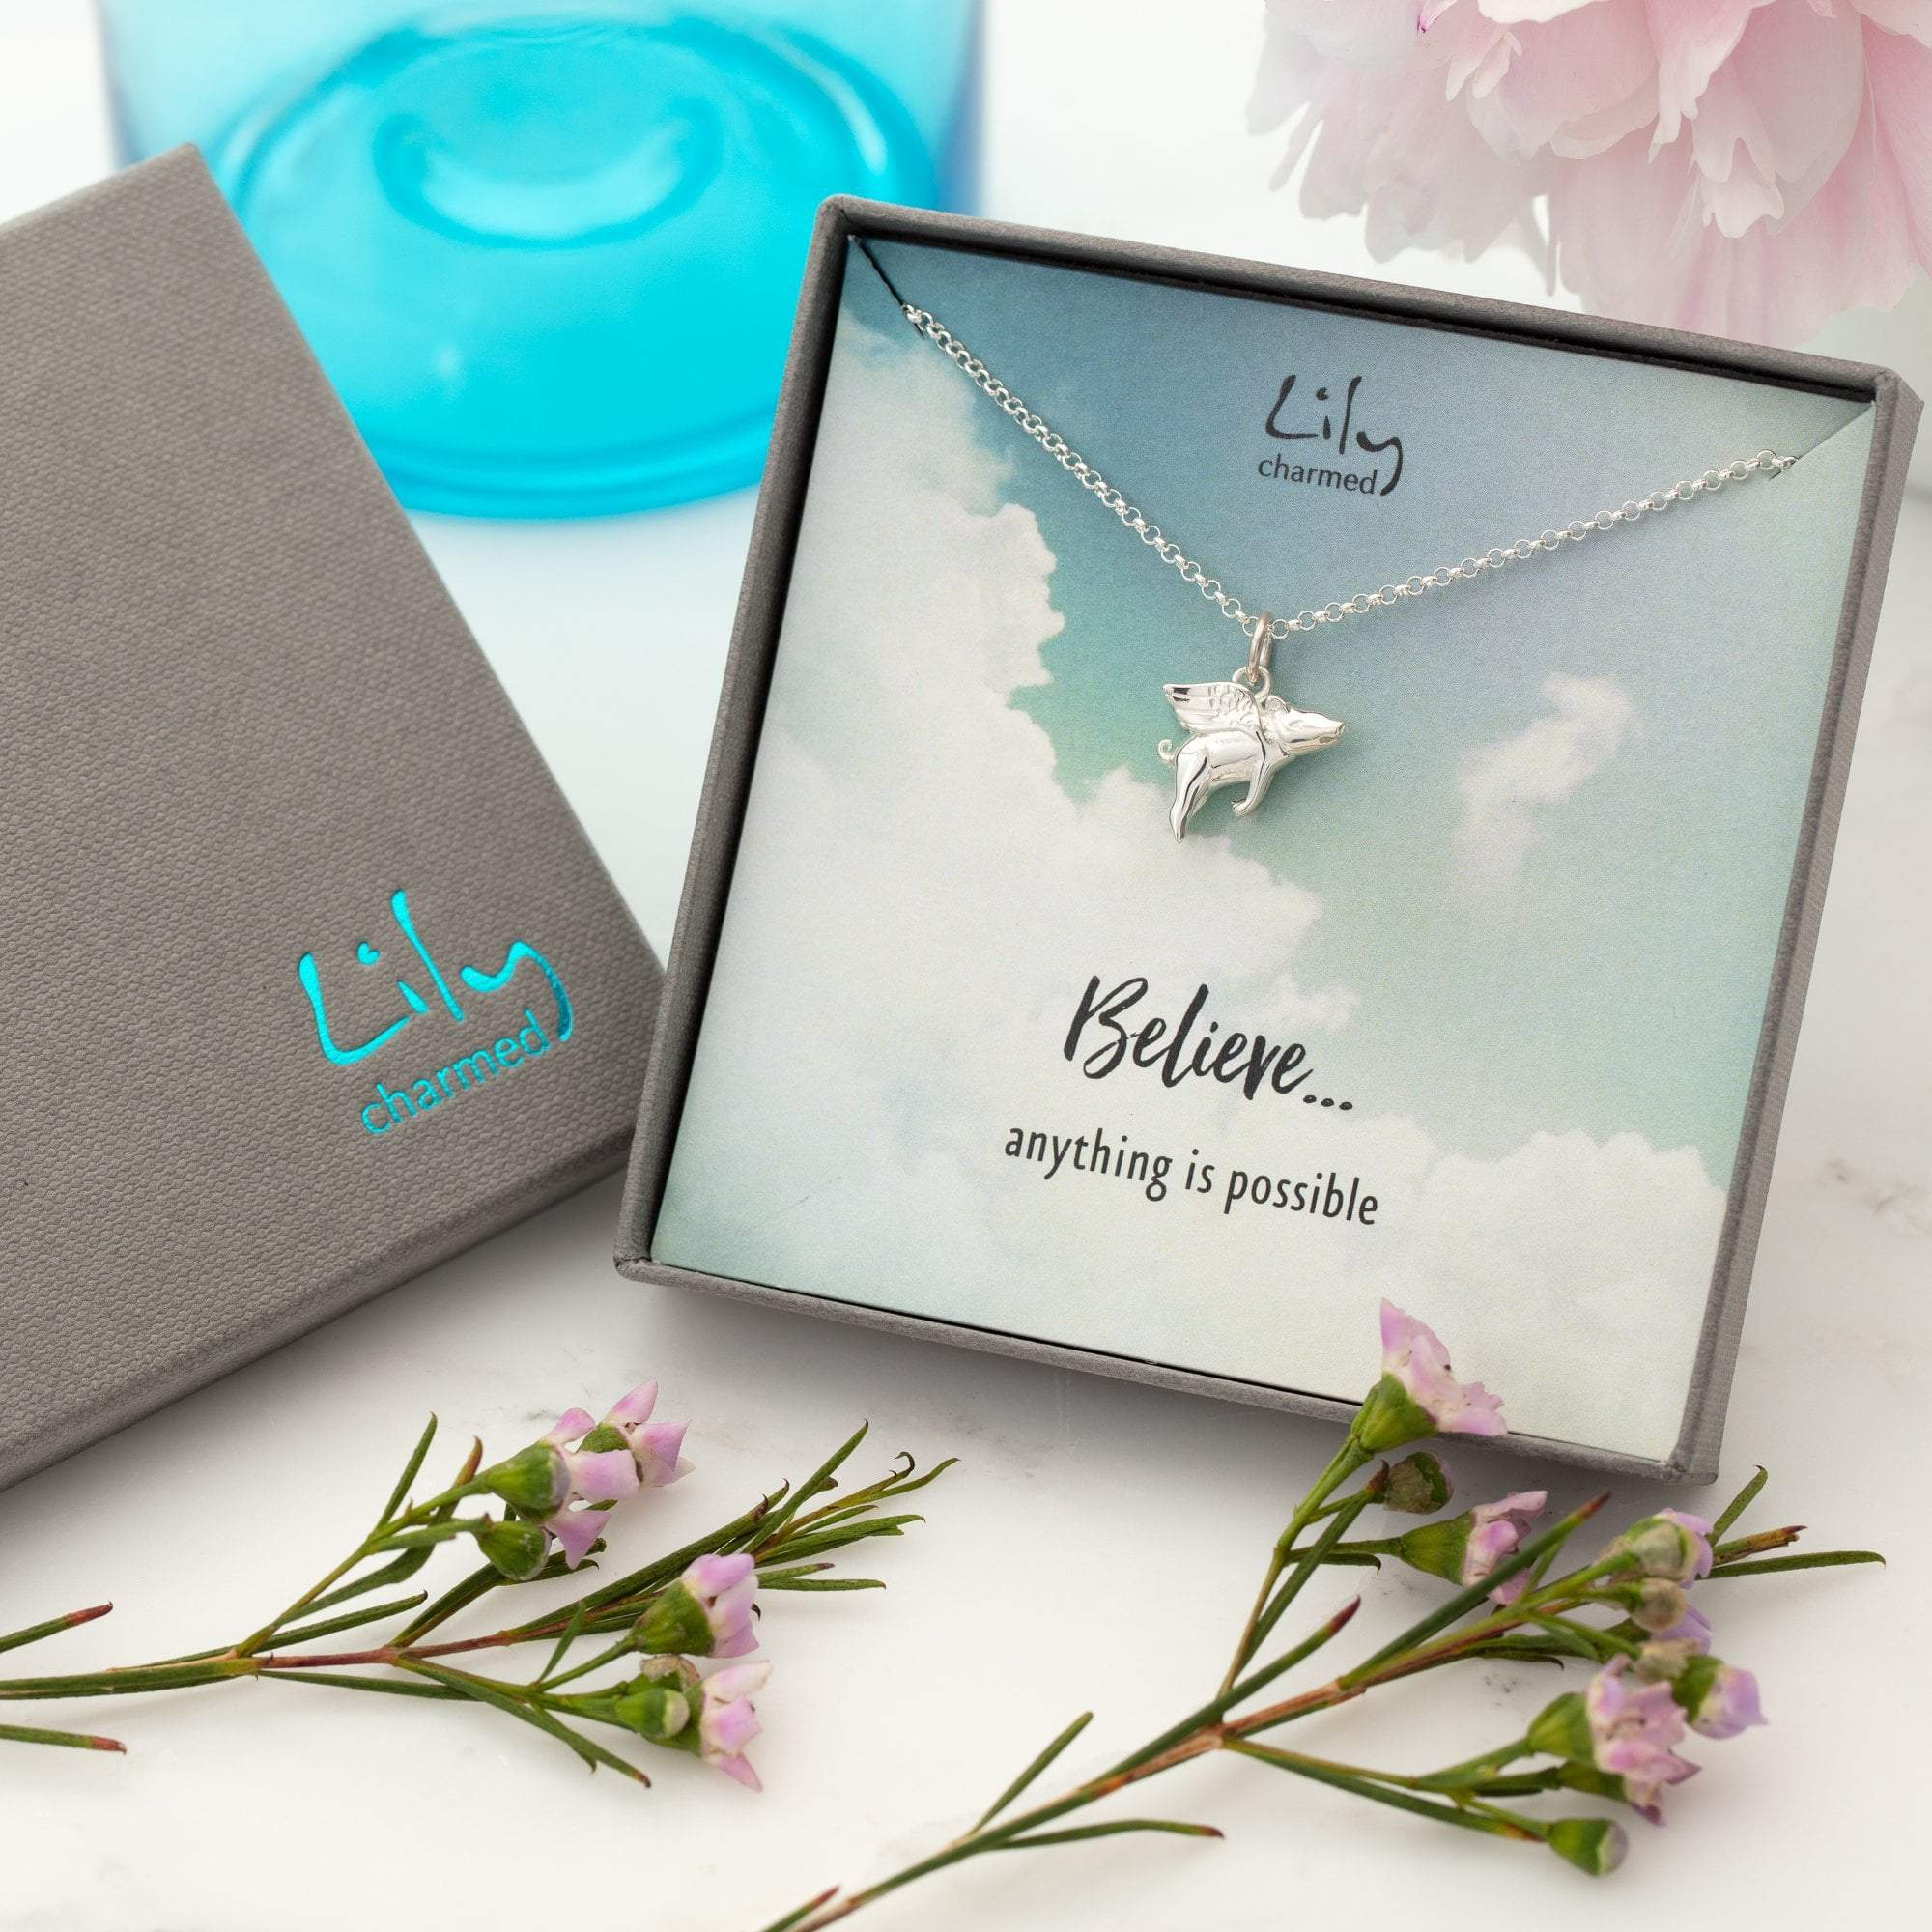 Silver Flying Pig Necklace with 'Believe' Message - Lily Charmed